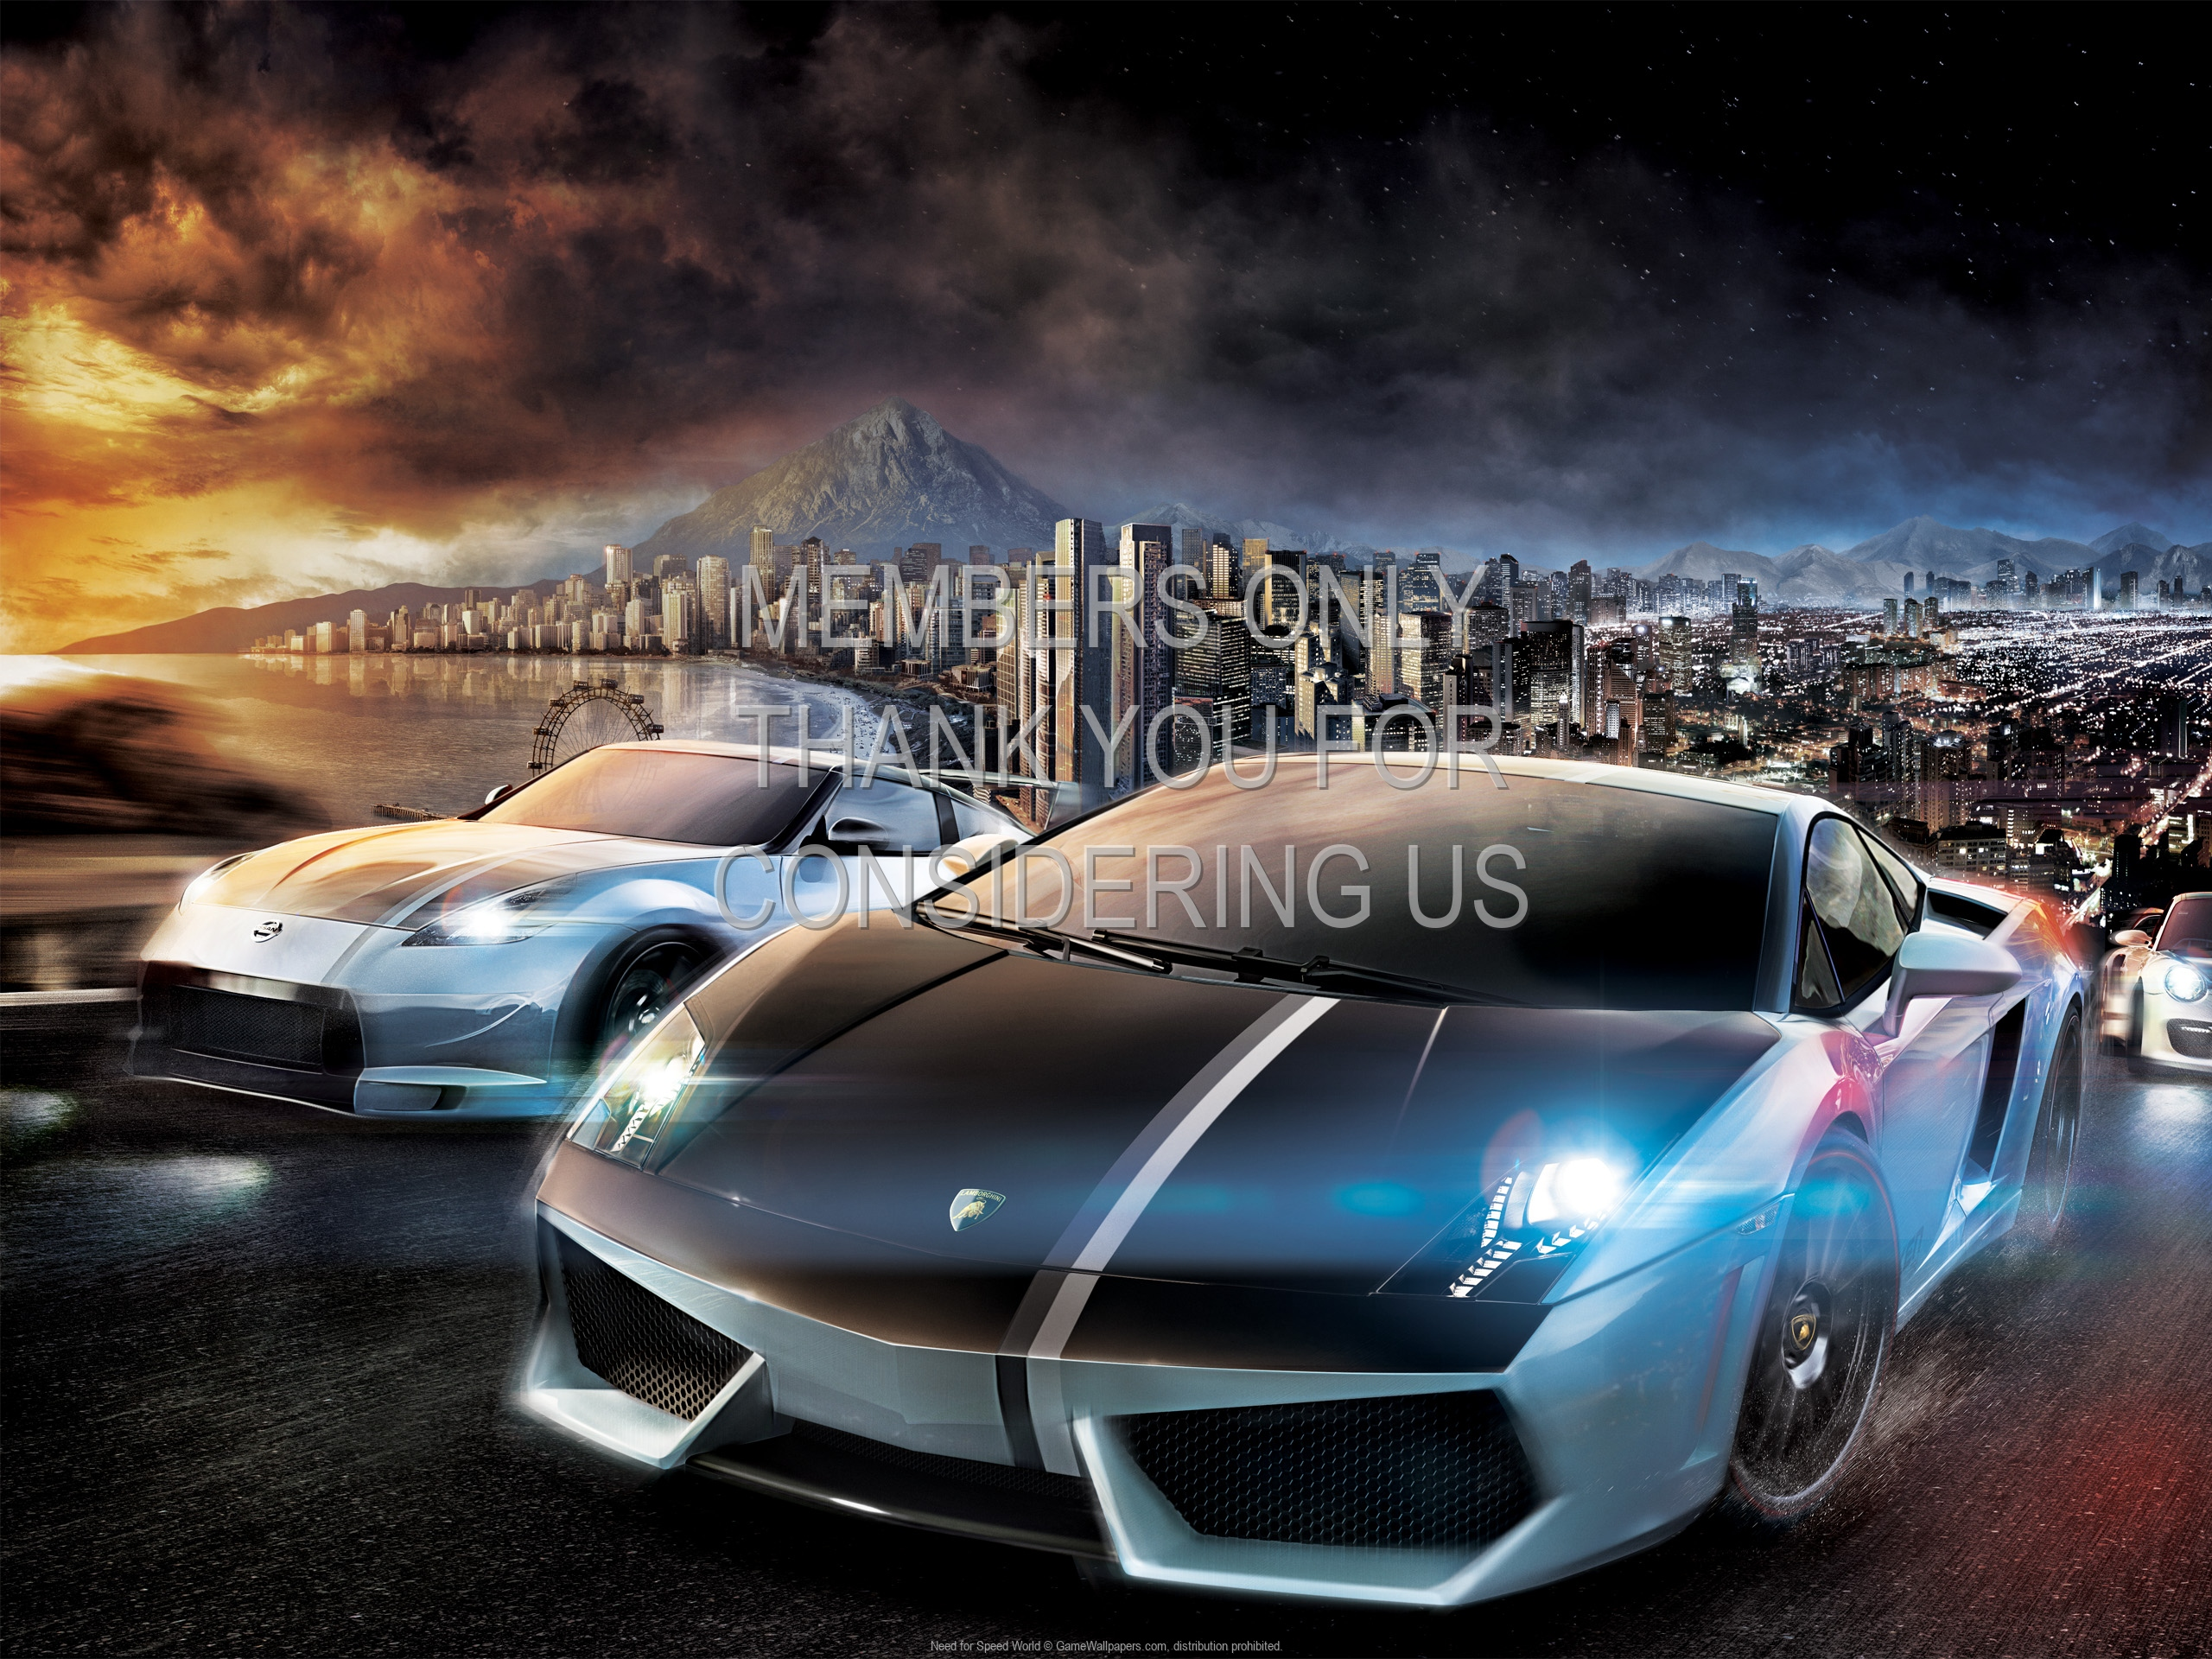 Need for Speed: World 1920x1080 Handy Hintergrundbild 01